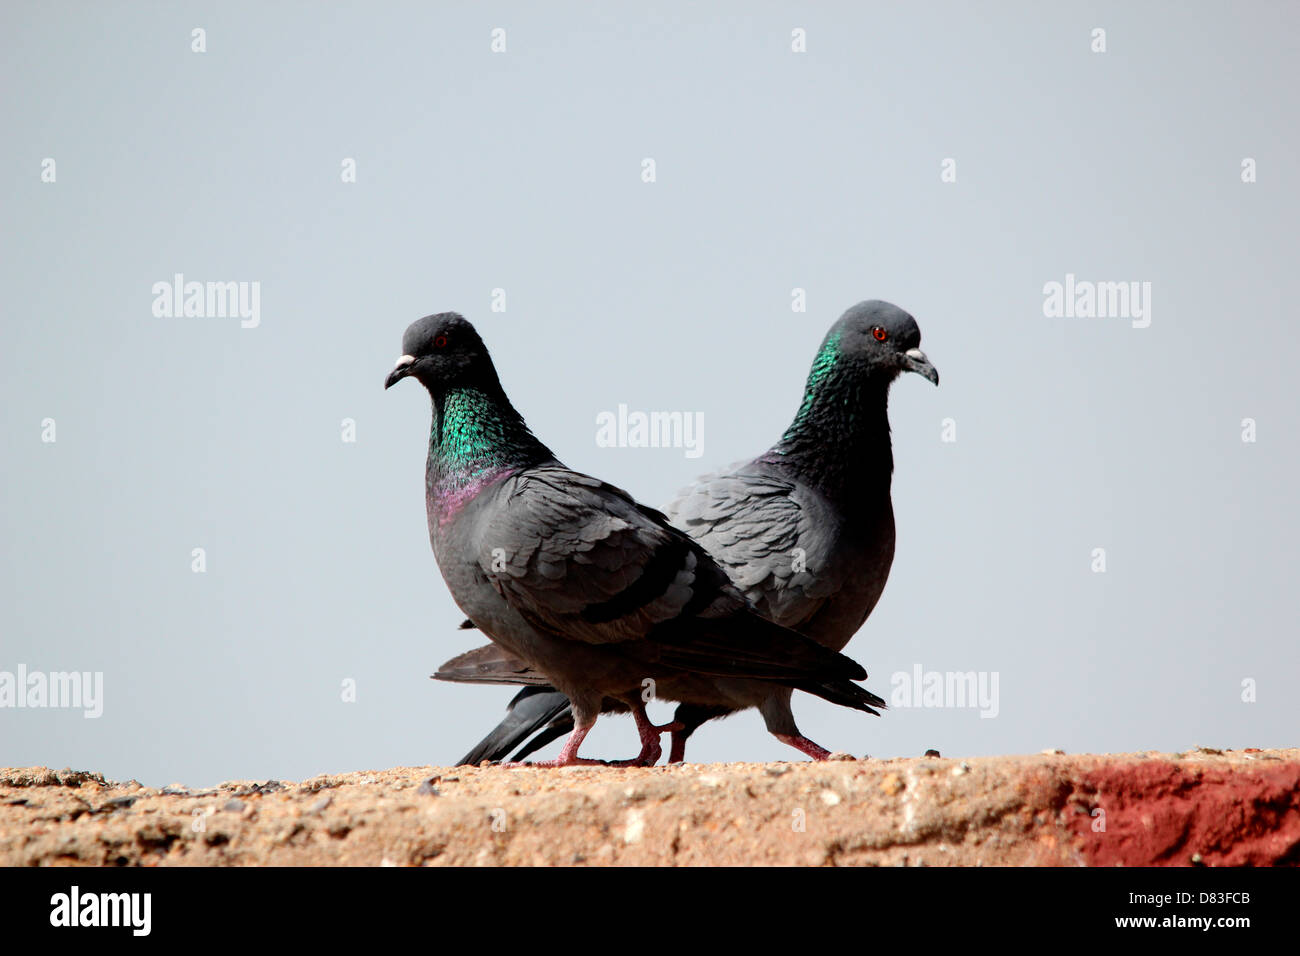 Two pigeons looking in two different directions- a creative picture to show difference of opinion - Stock Image